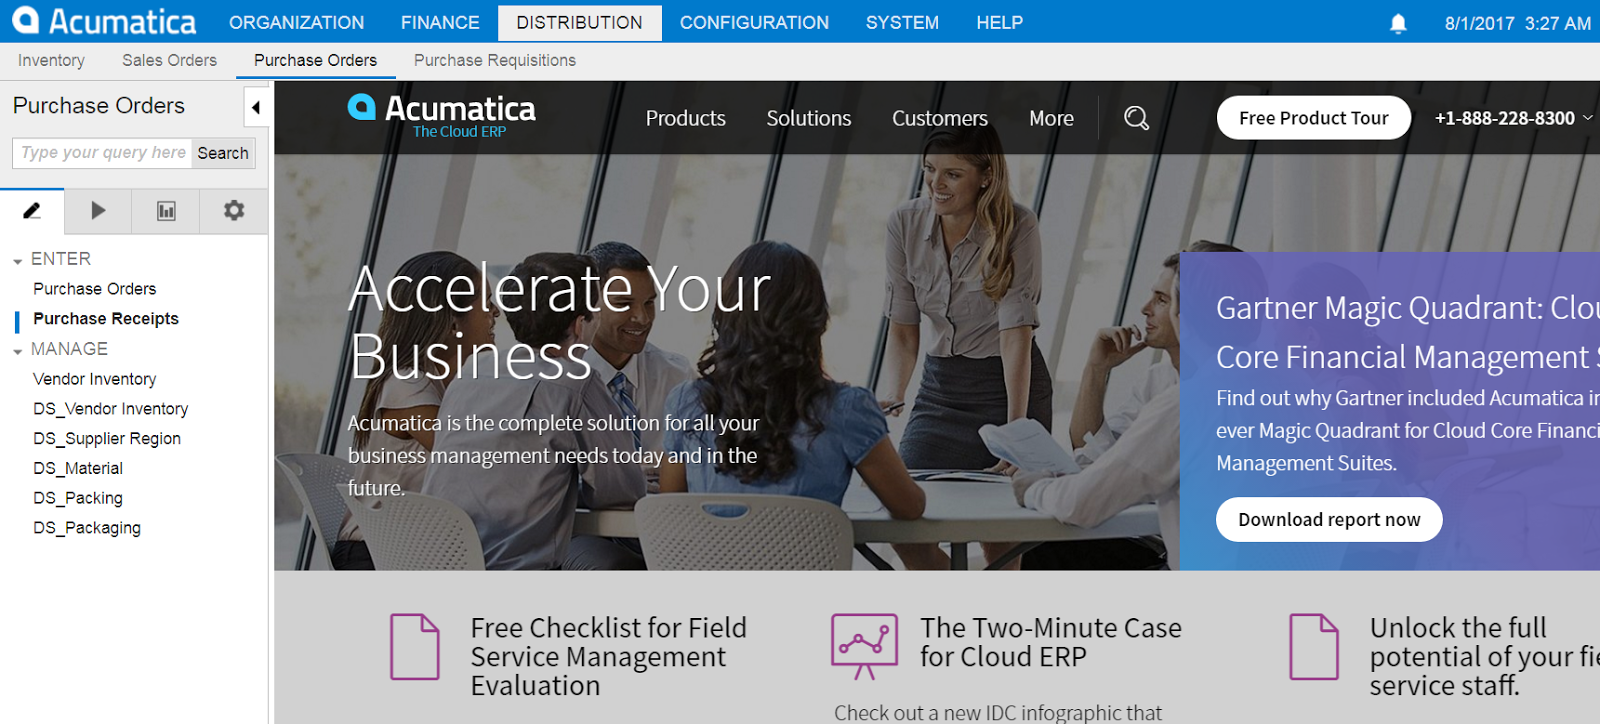 redirects from Acumatica